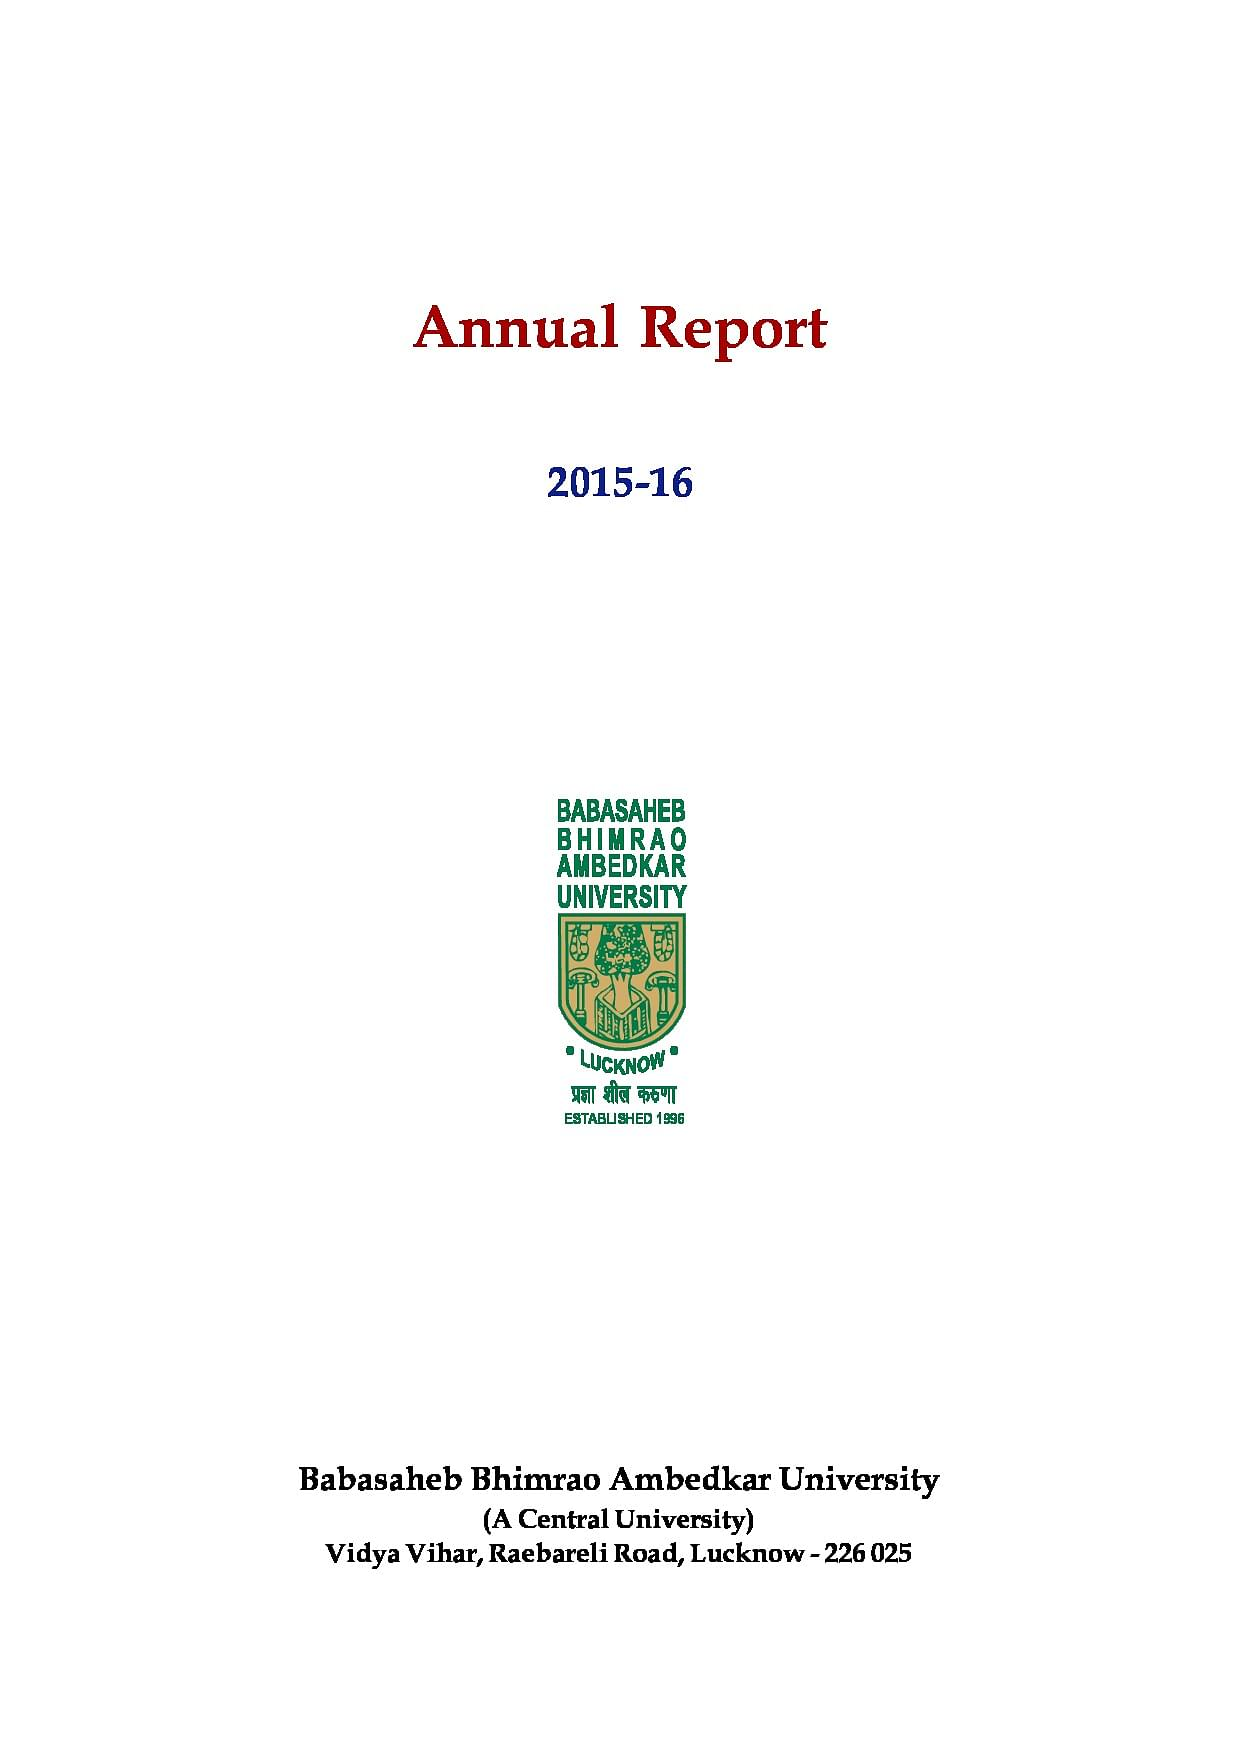 annual report of nestle 2015 16 pdf